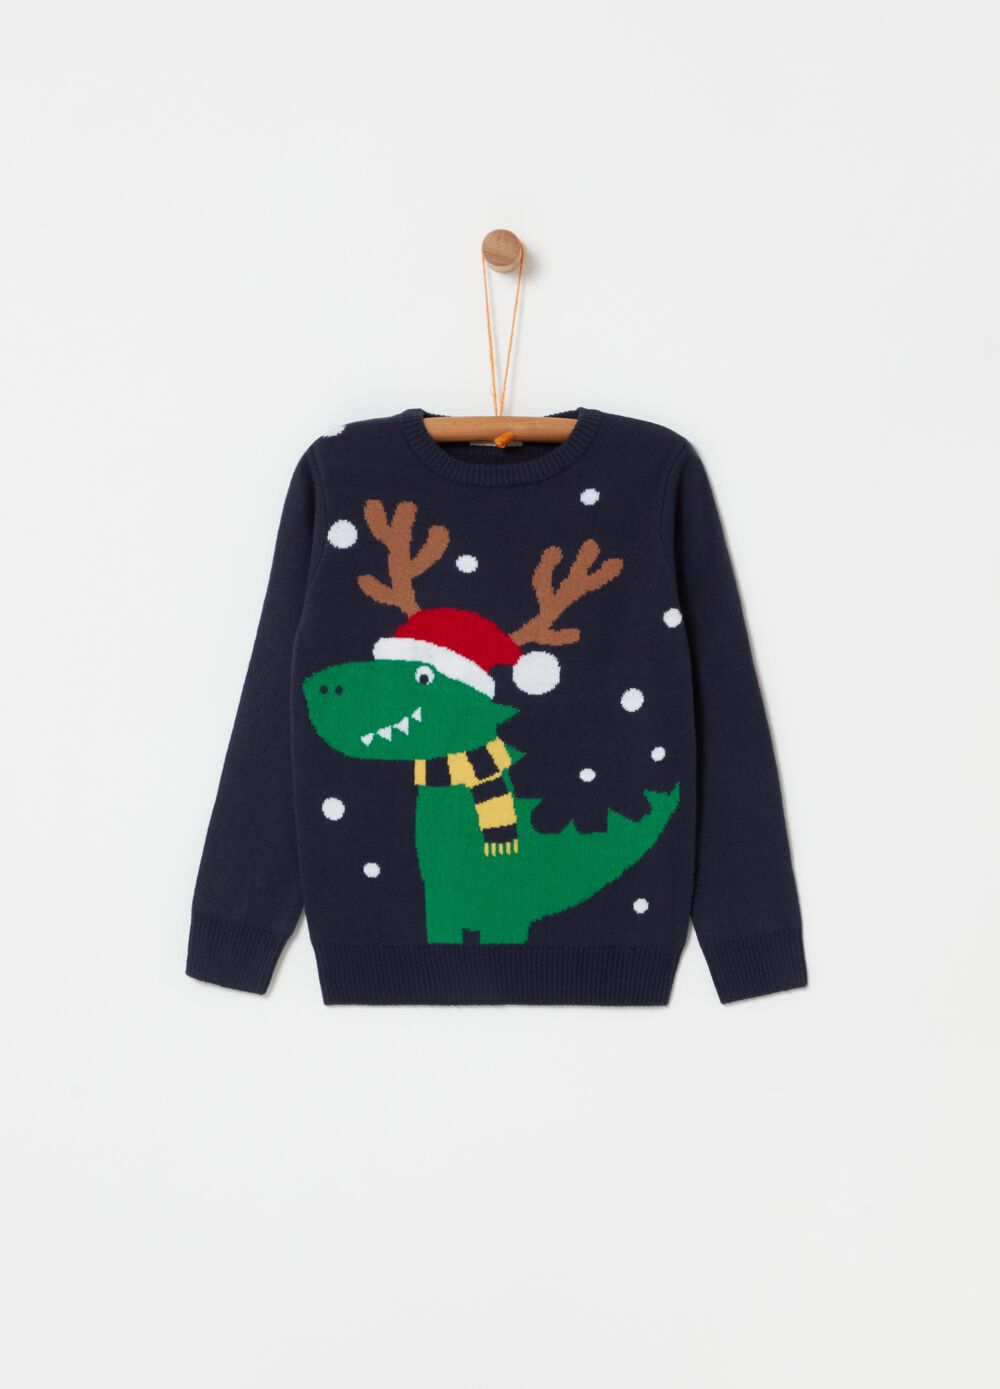 Crew-neck top with dinosaur design